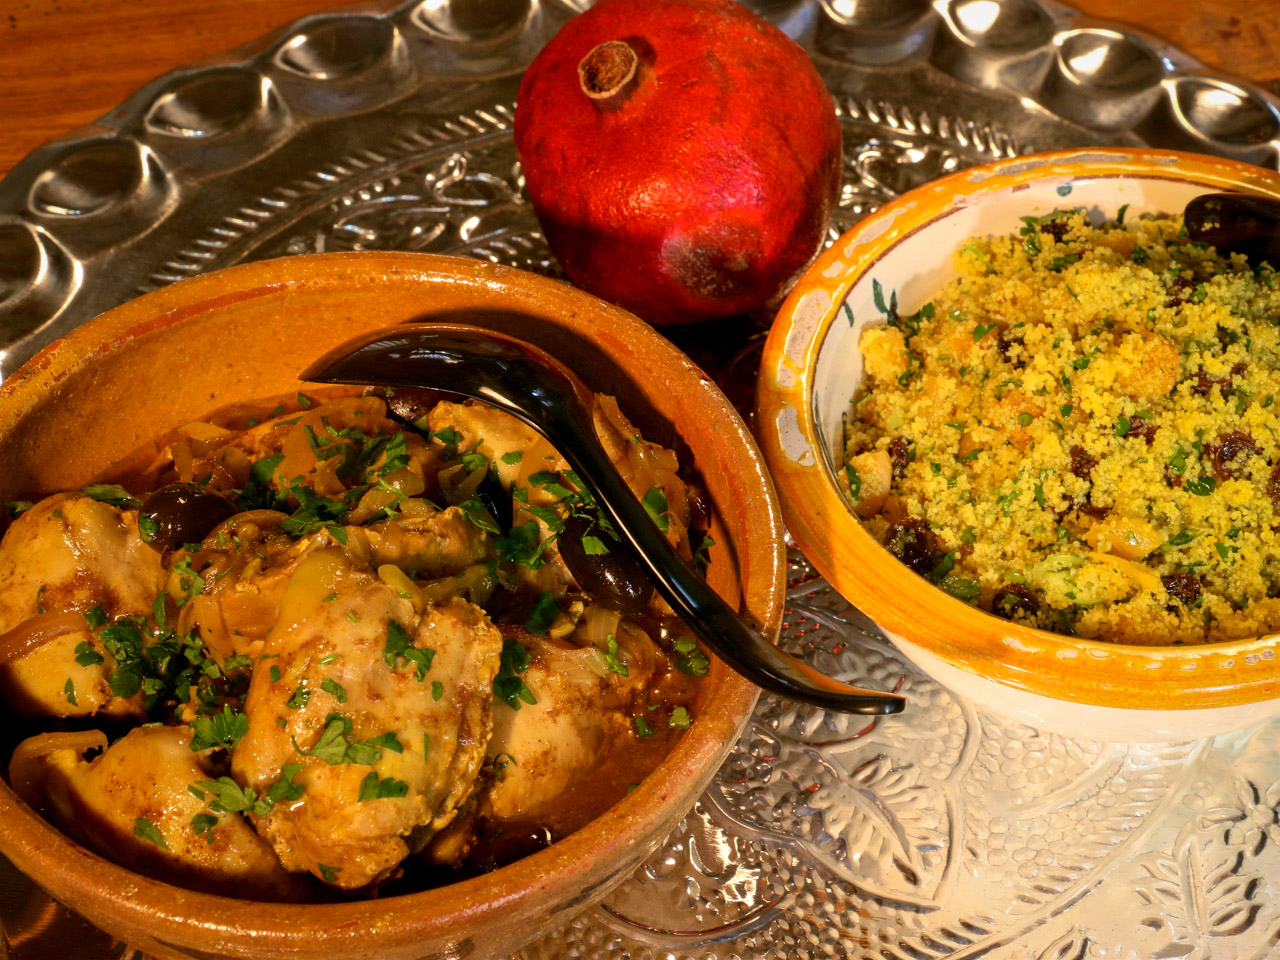 Chicken tagine with apricot couscous